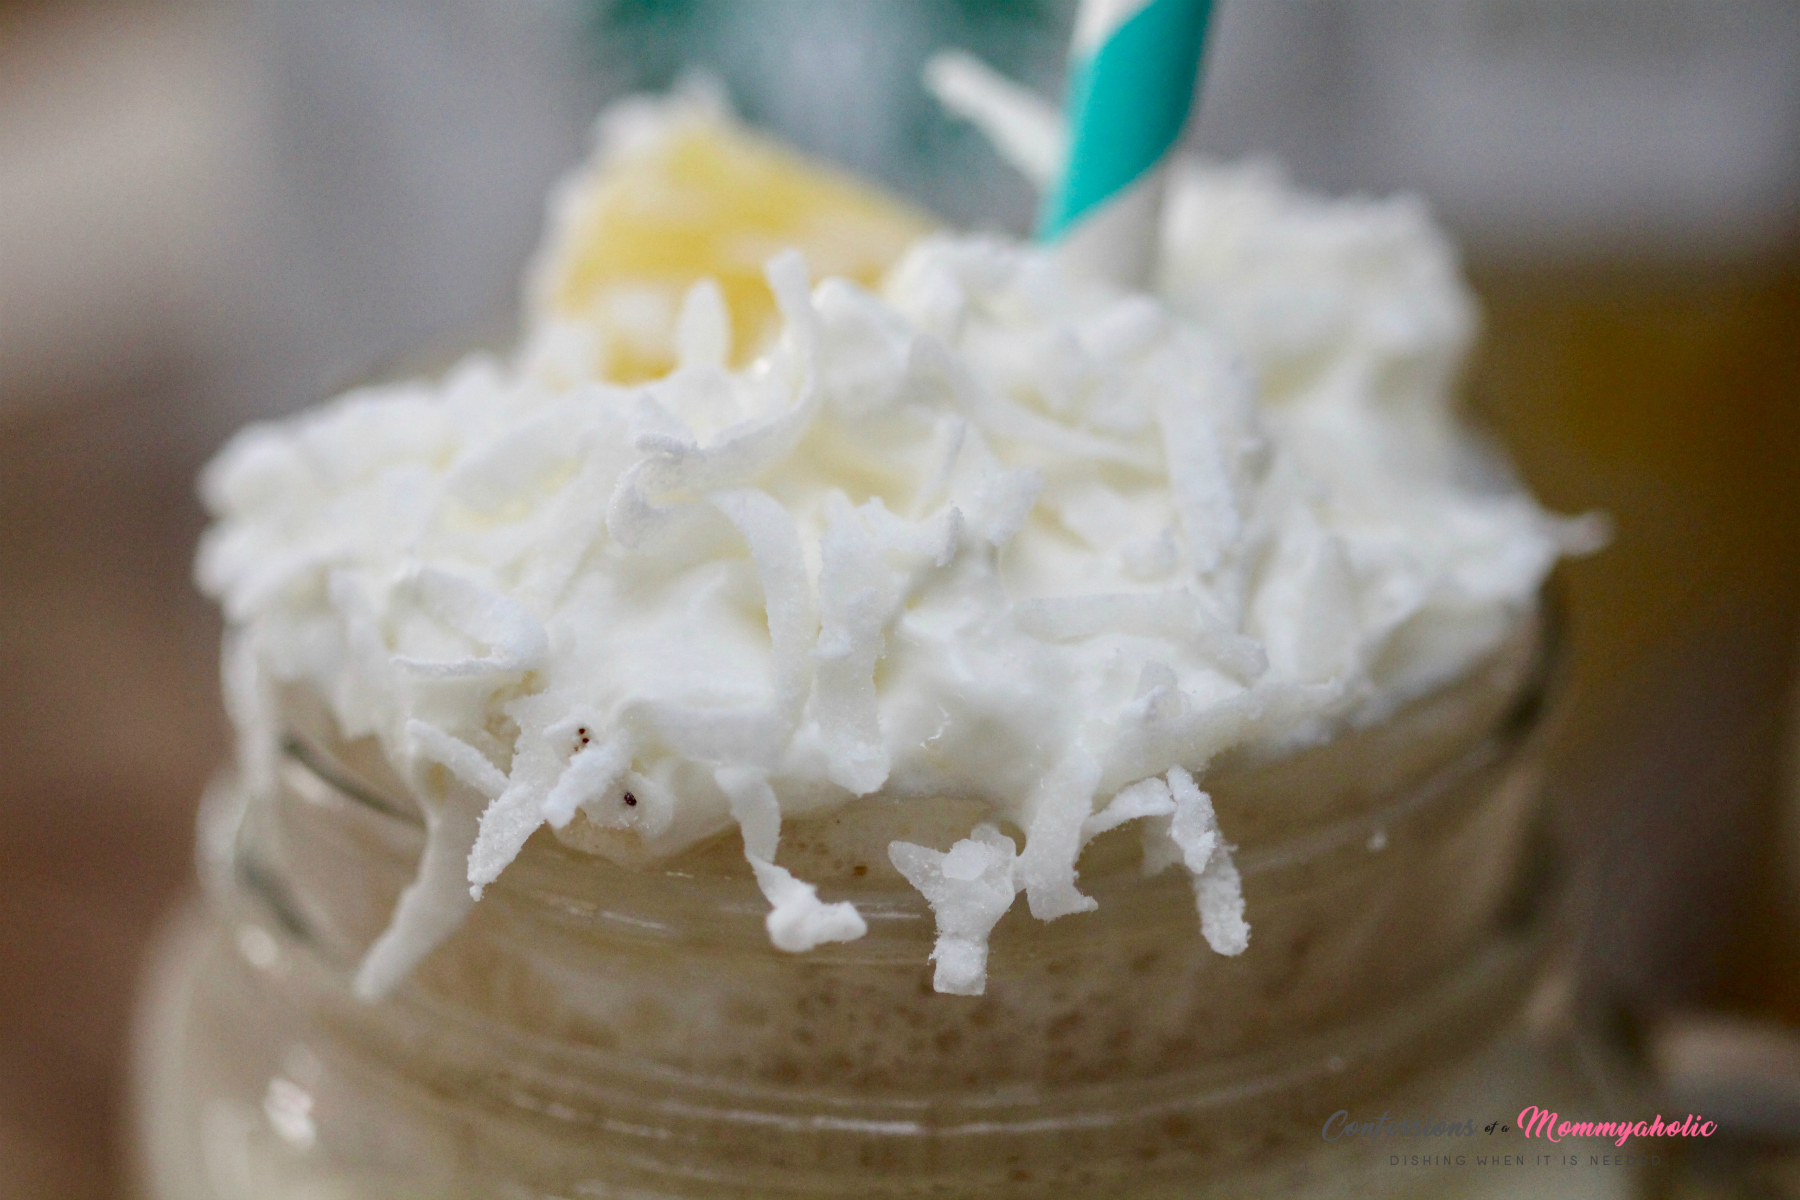 Starbucks Pina Colada Iced Coffee Extreme Closeup